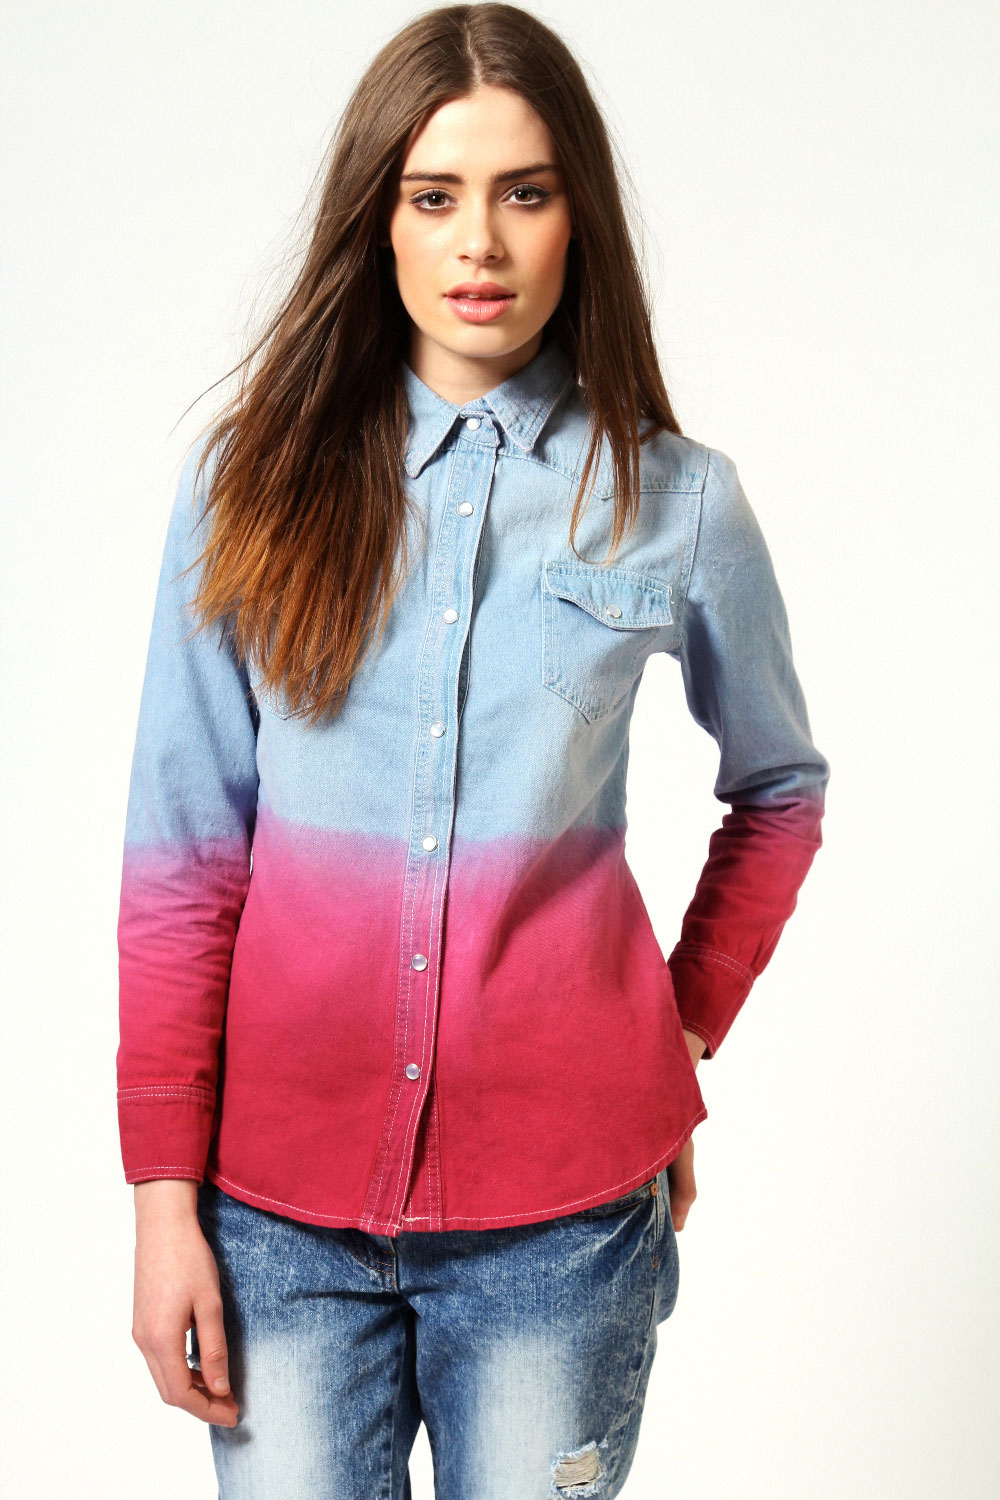 5c9f867bd75 Image is loading Boohoo-Kelly-Long-Sleeve-Ombre-Denim-Button-Up-